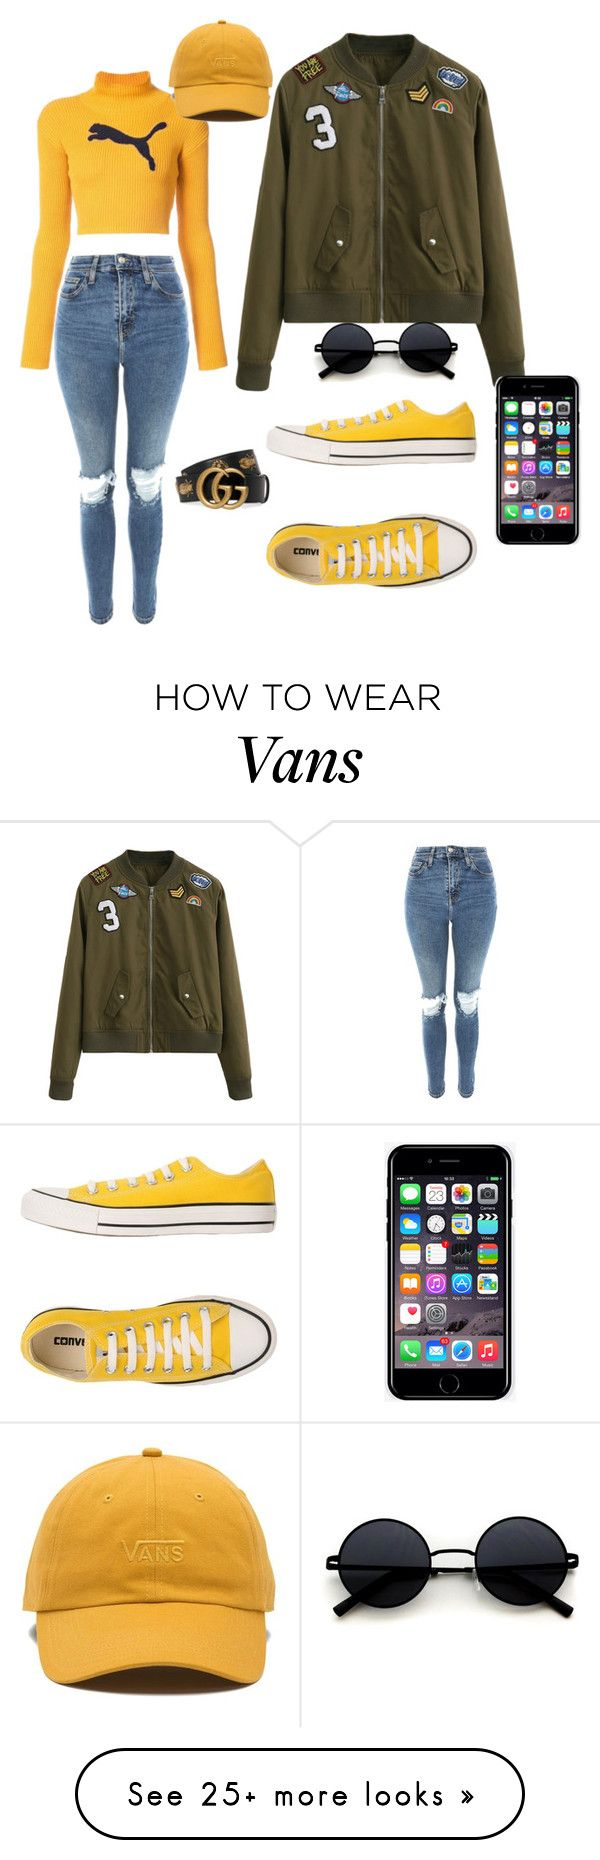 """""""Mall Outfit"""" by bibybenci on Polyvore featuring WithChic, Puma, Topshop, Converse, Vans, Gucci and Off-White"""